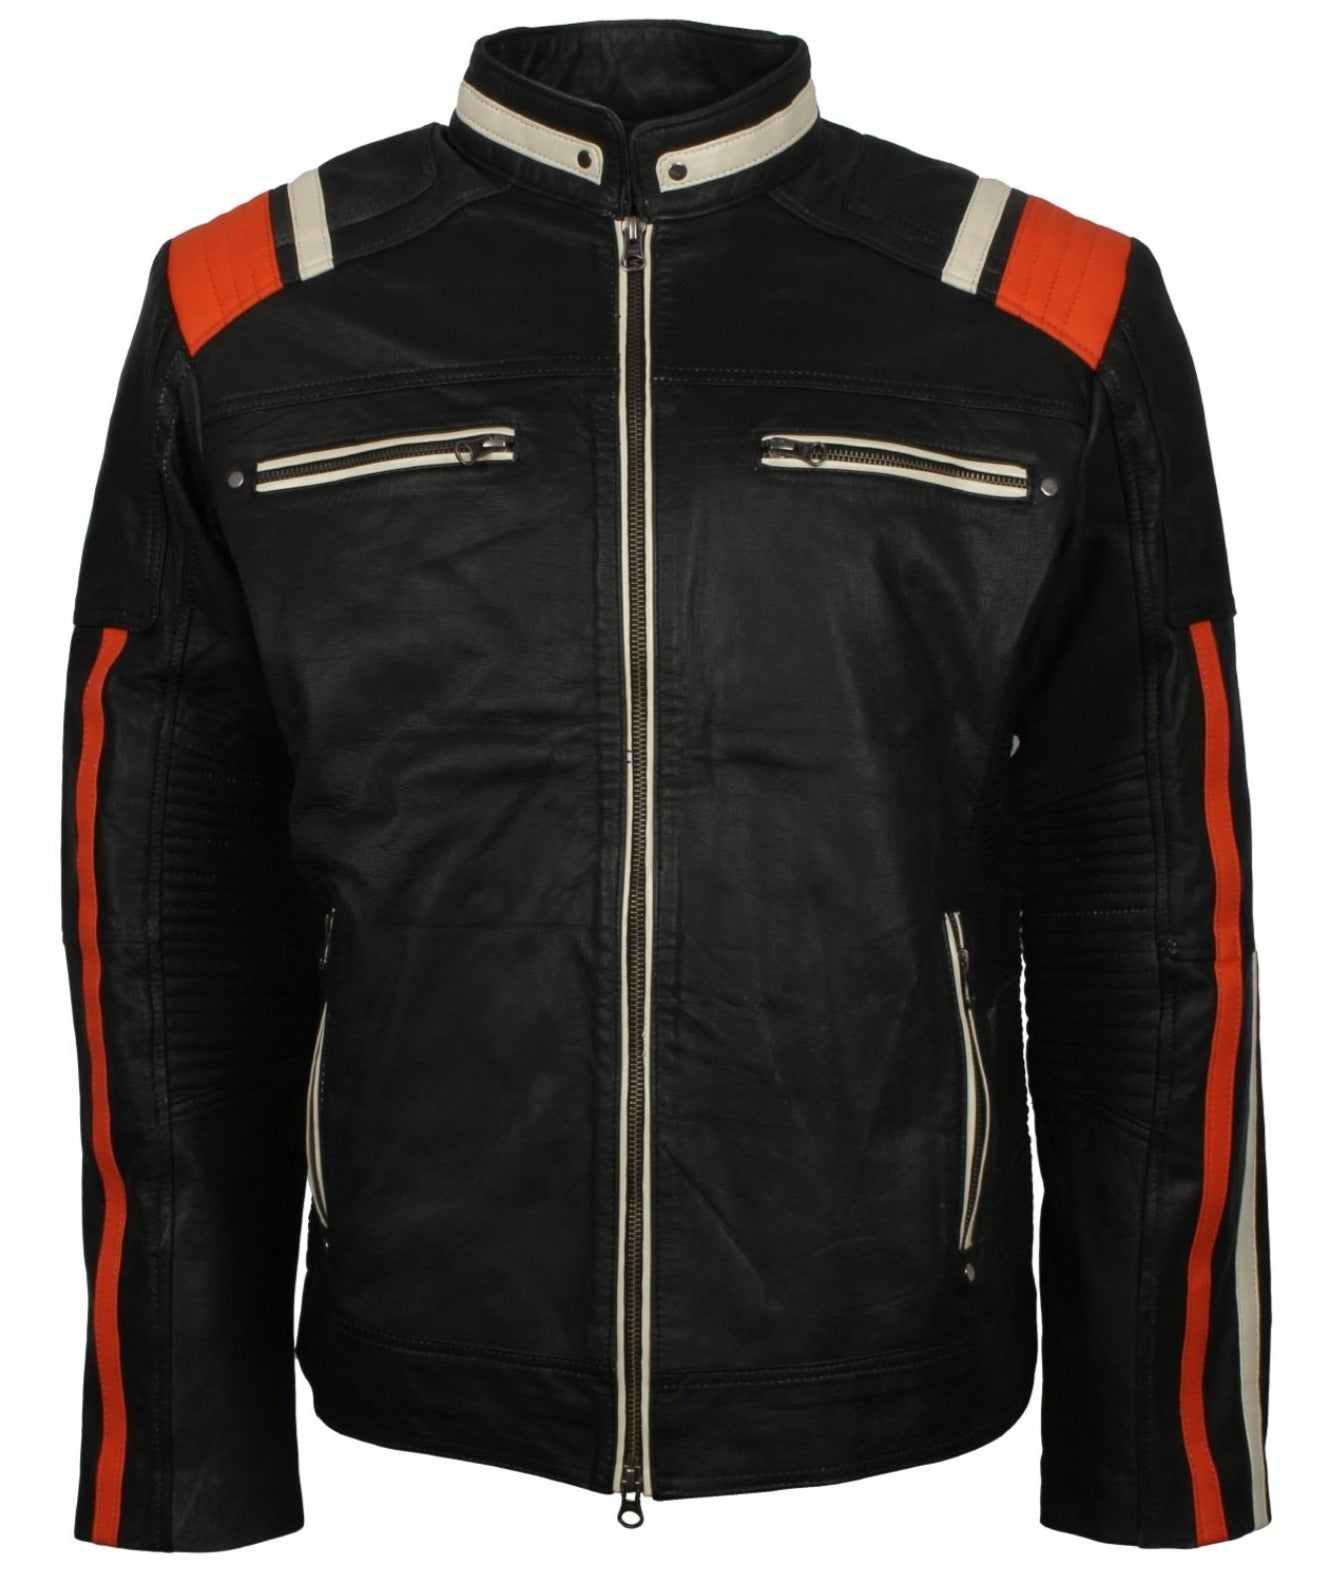 Mens Biker Leather Jacket wit Stripes